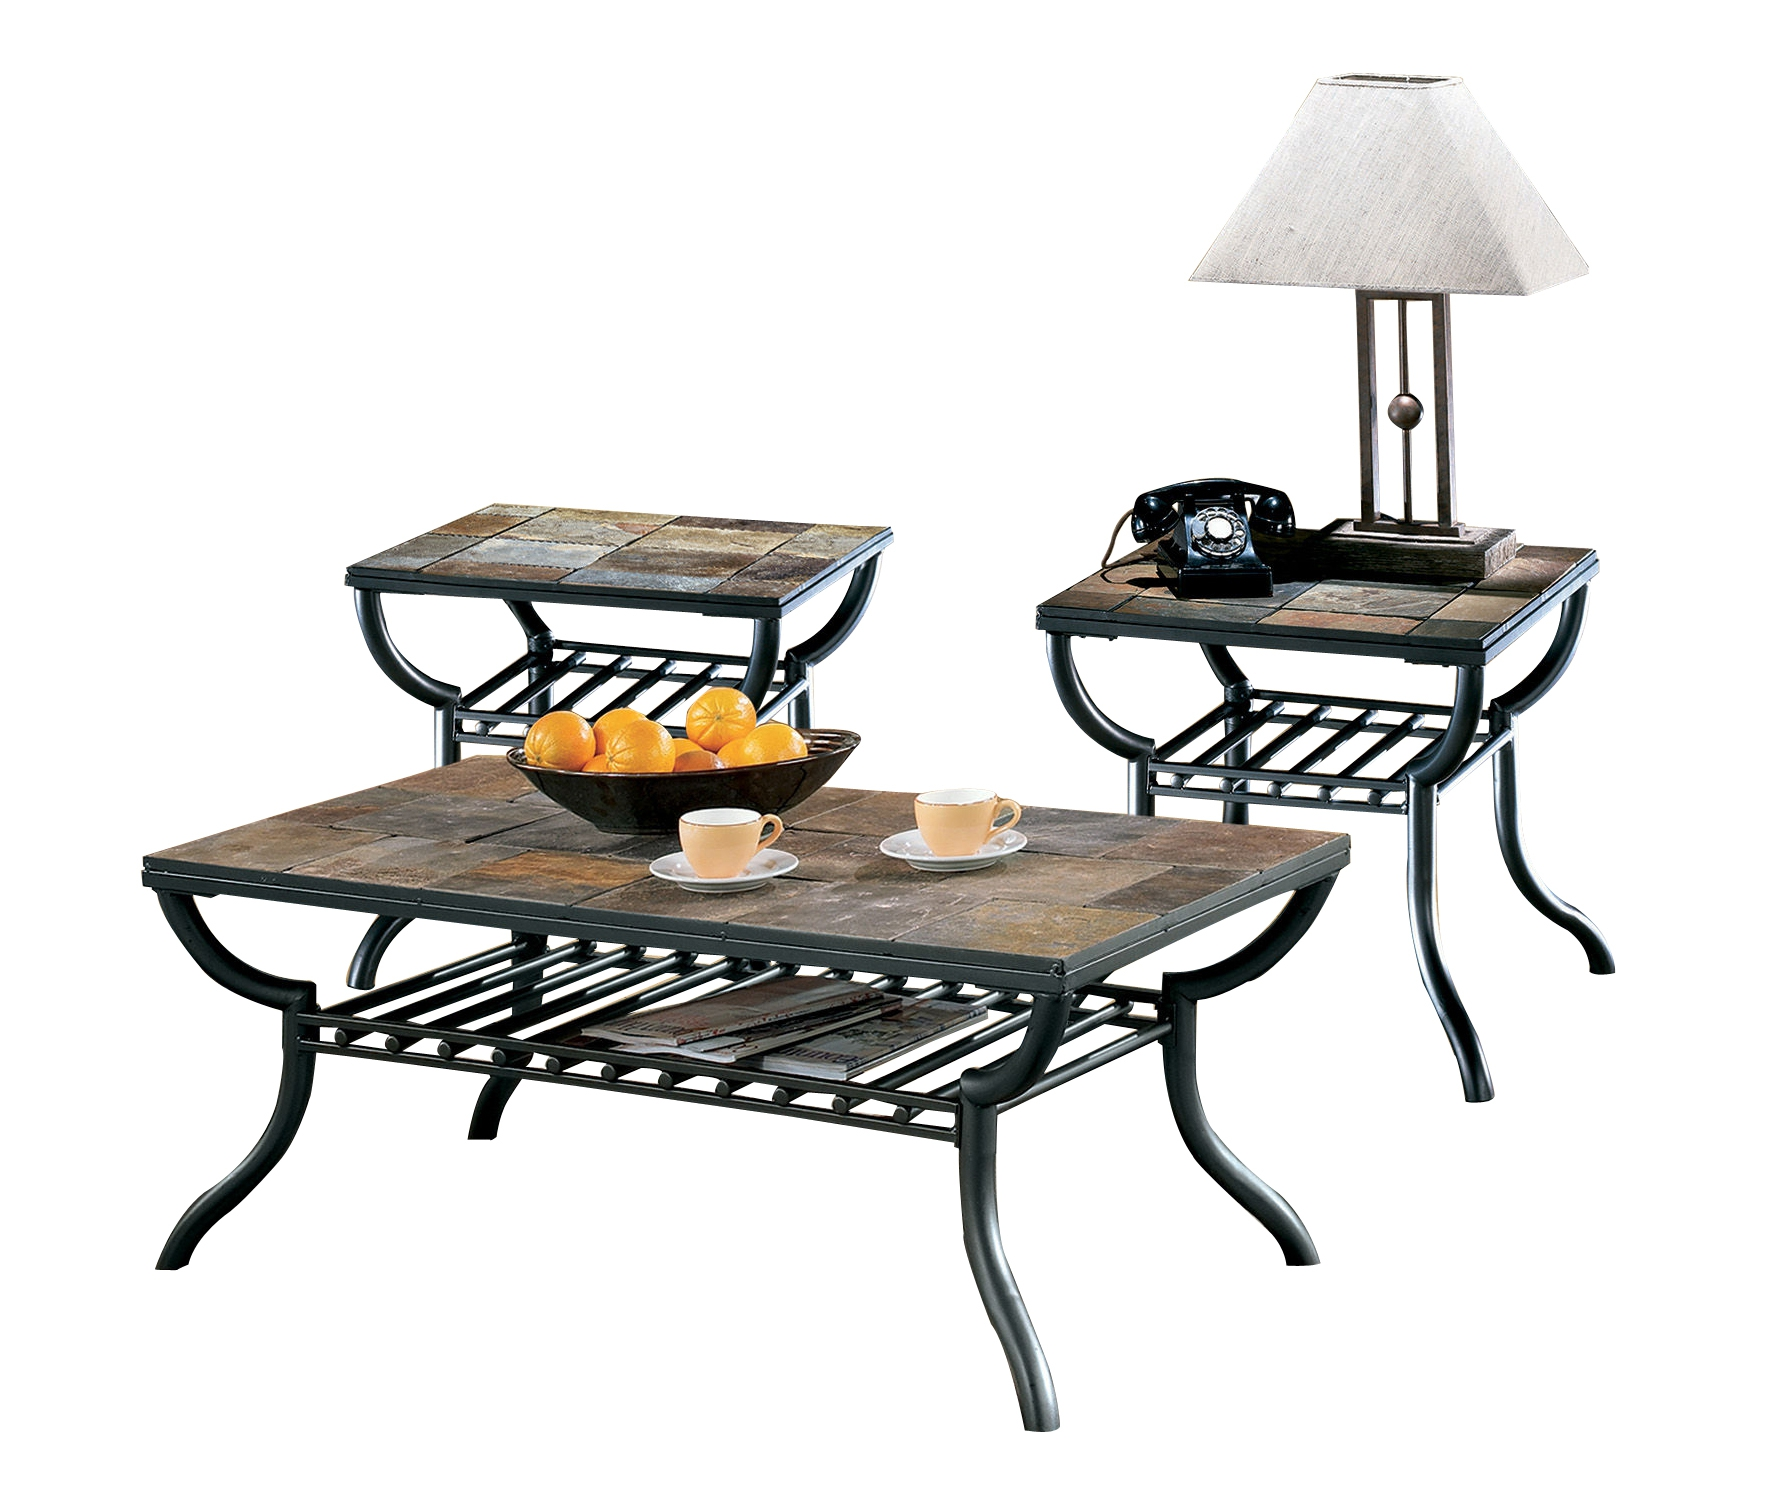 Ashley Furniture Discontinued: Ashley Furniture Antigo 3pc Coffee Table Set